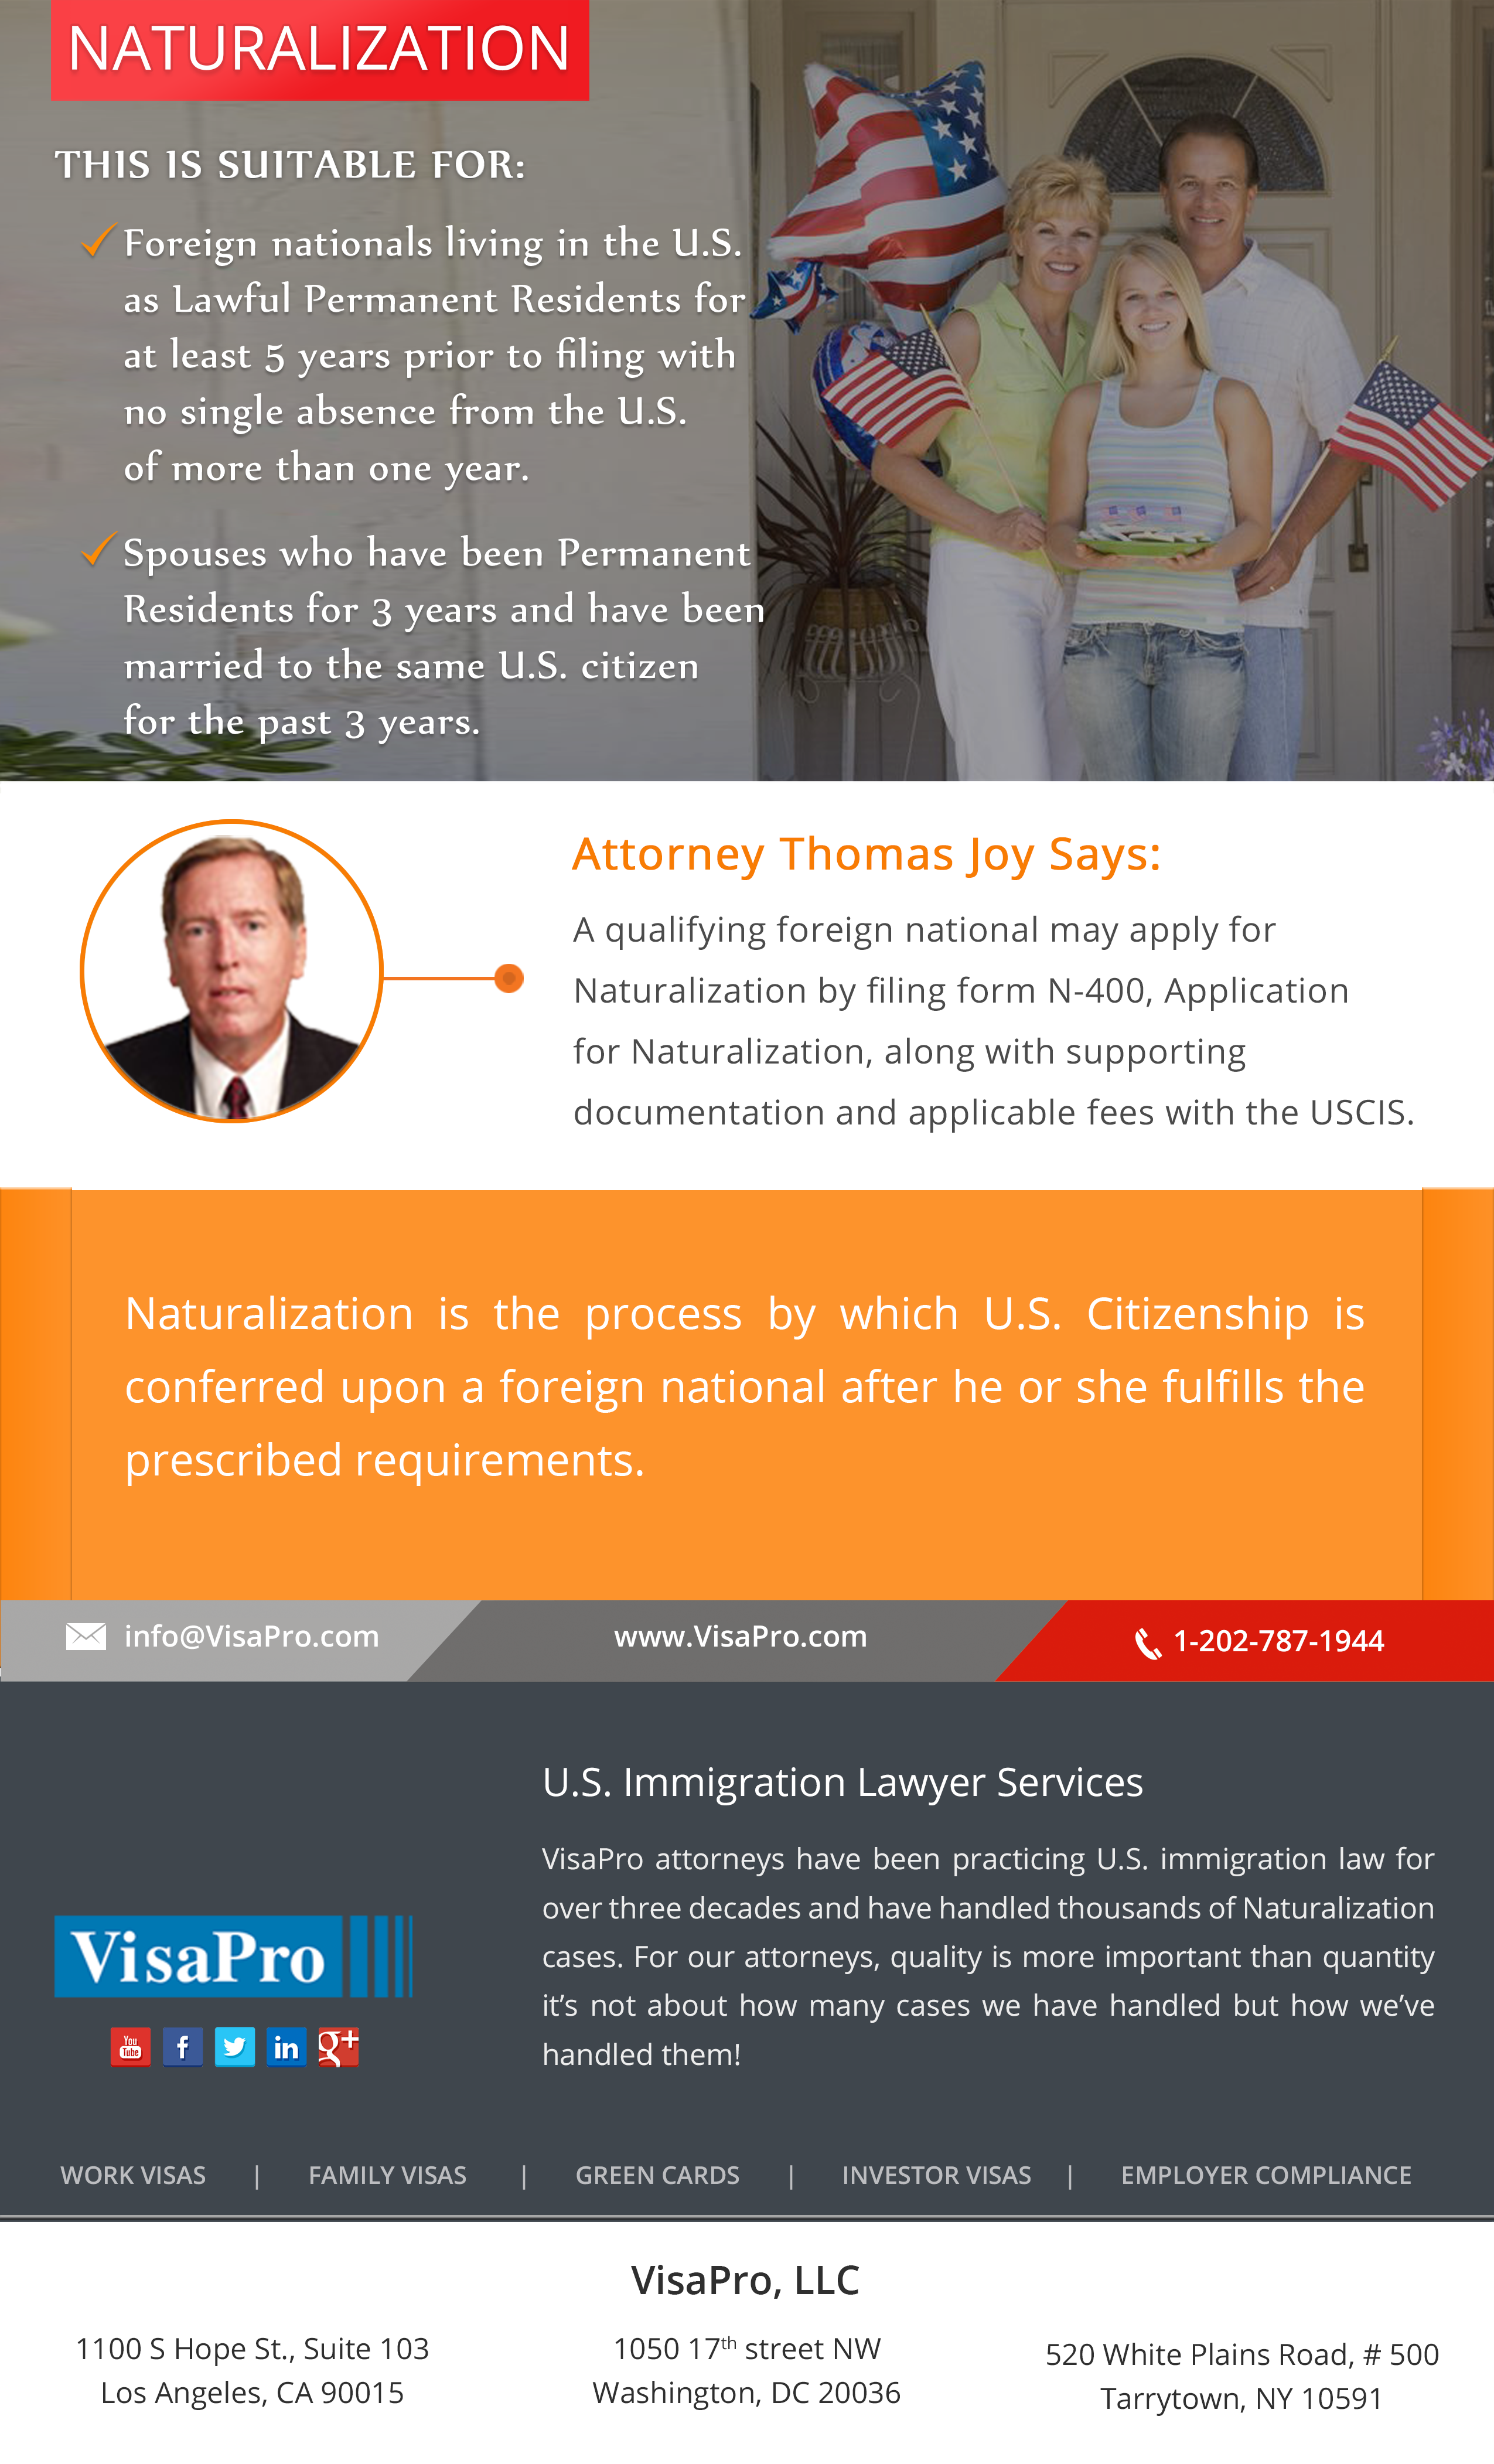 US Naturalization Application Status, Requirements And